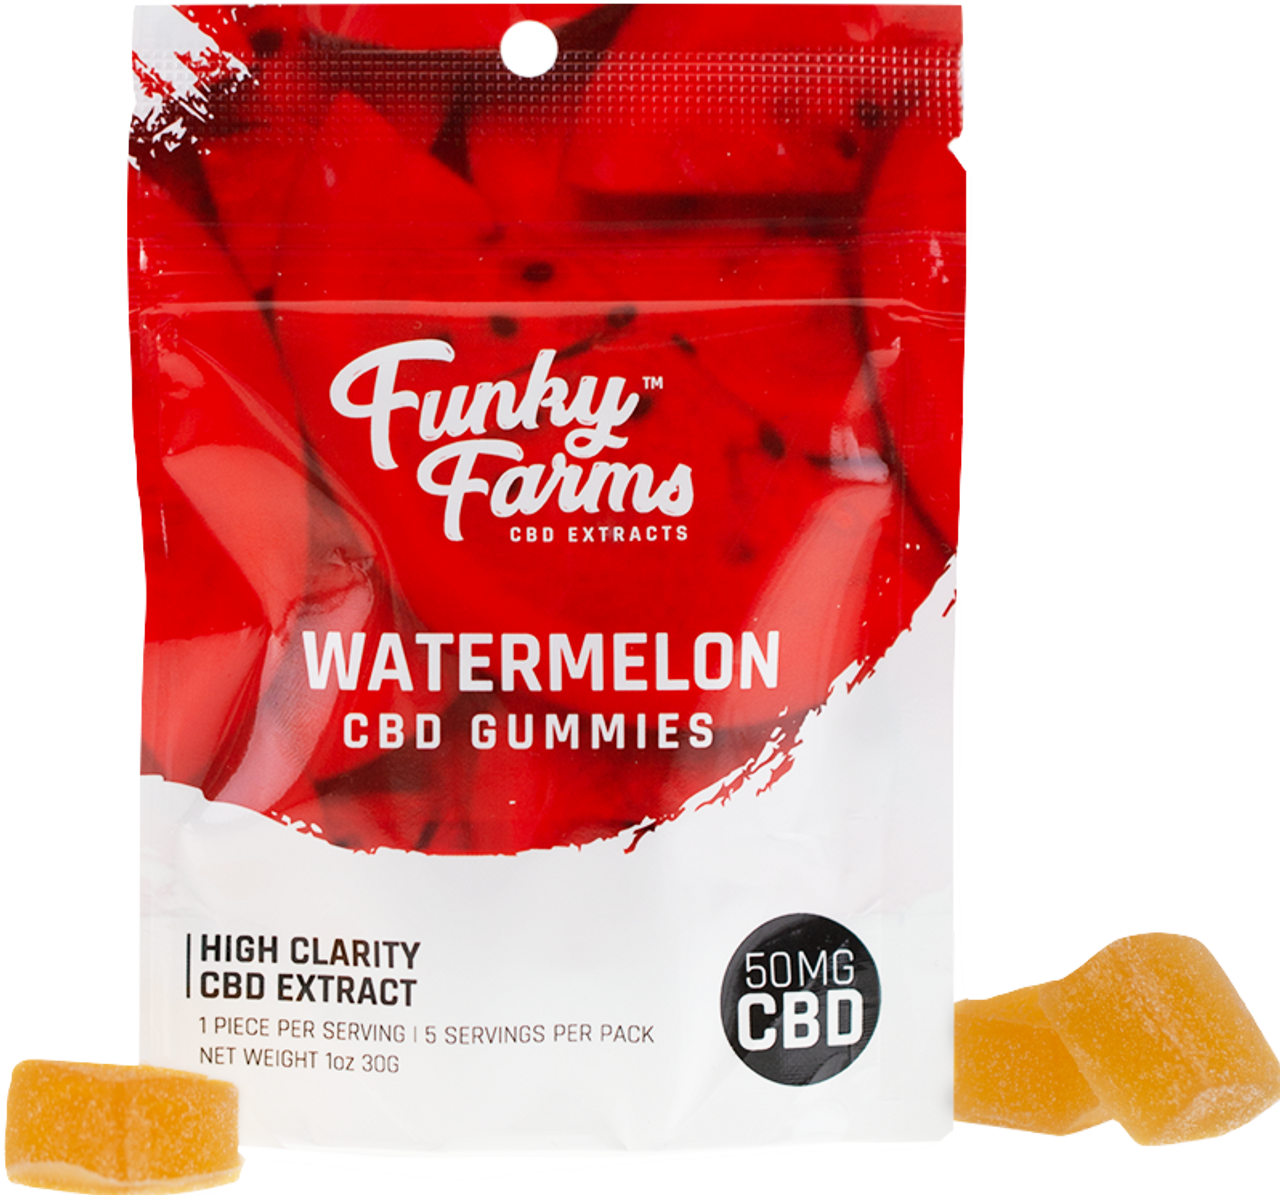 Funky Farms: Watermelon CBD Gummies (50mg)